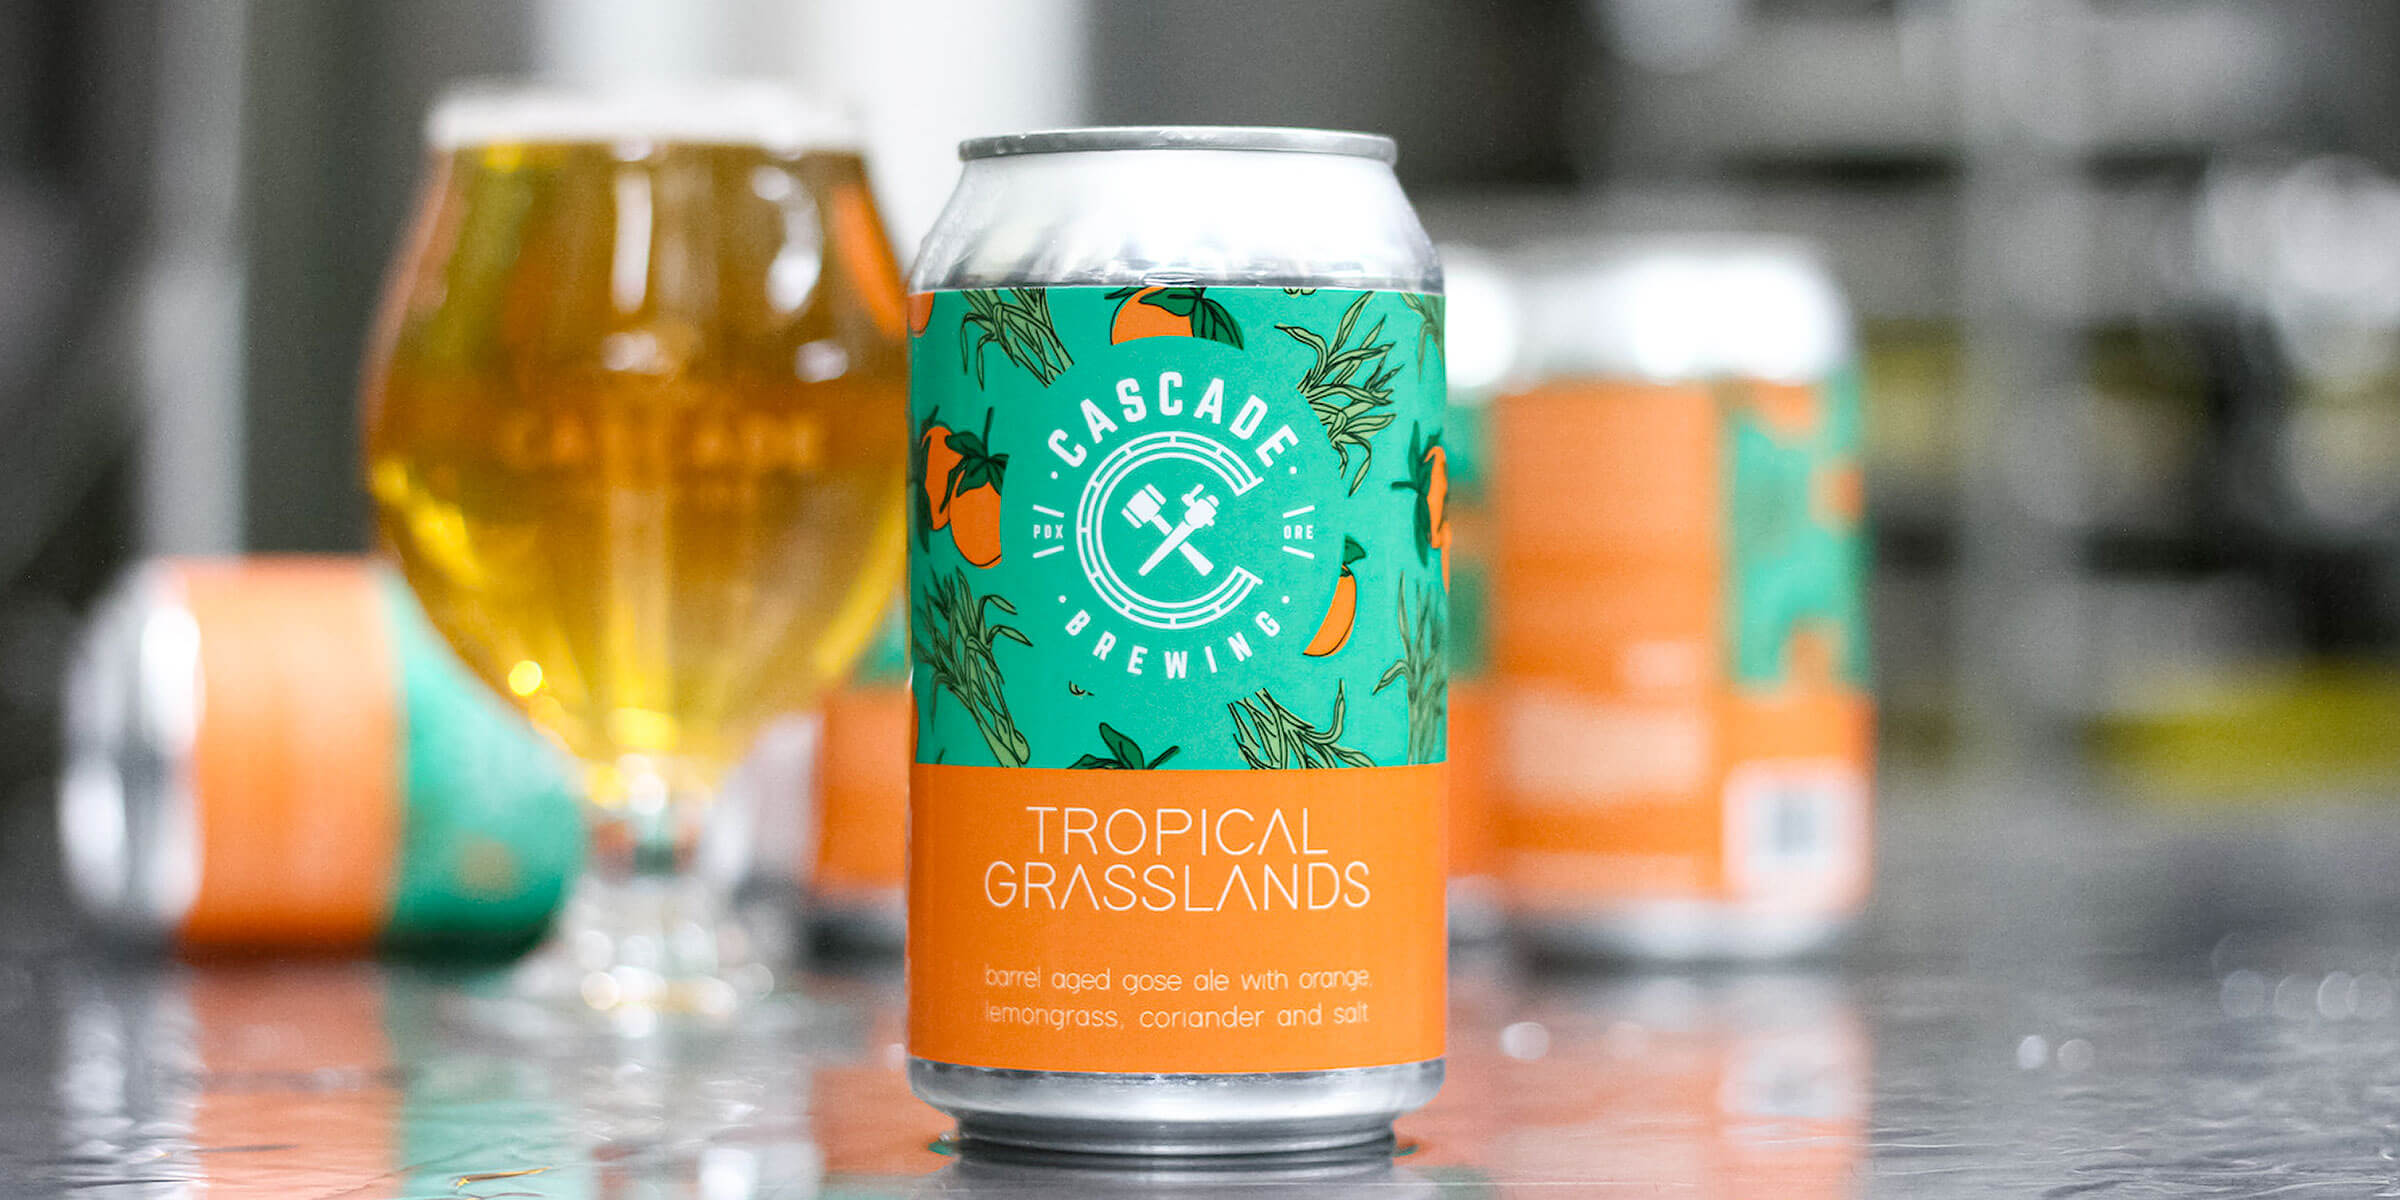 Cascade Brewing, a pioneer of the sour beer renaissance, is releasing Tropical Grasslands, its first sour beer in a can with limited distribution.